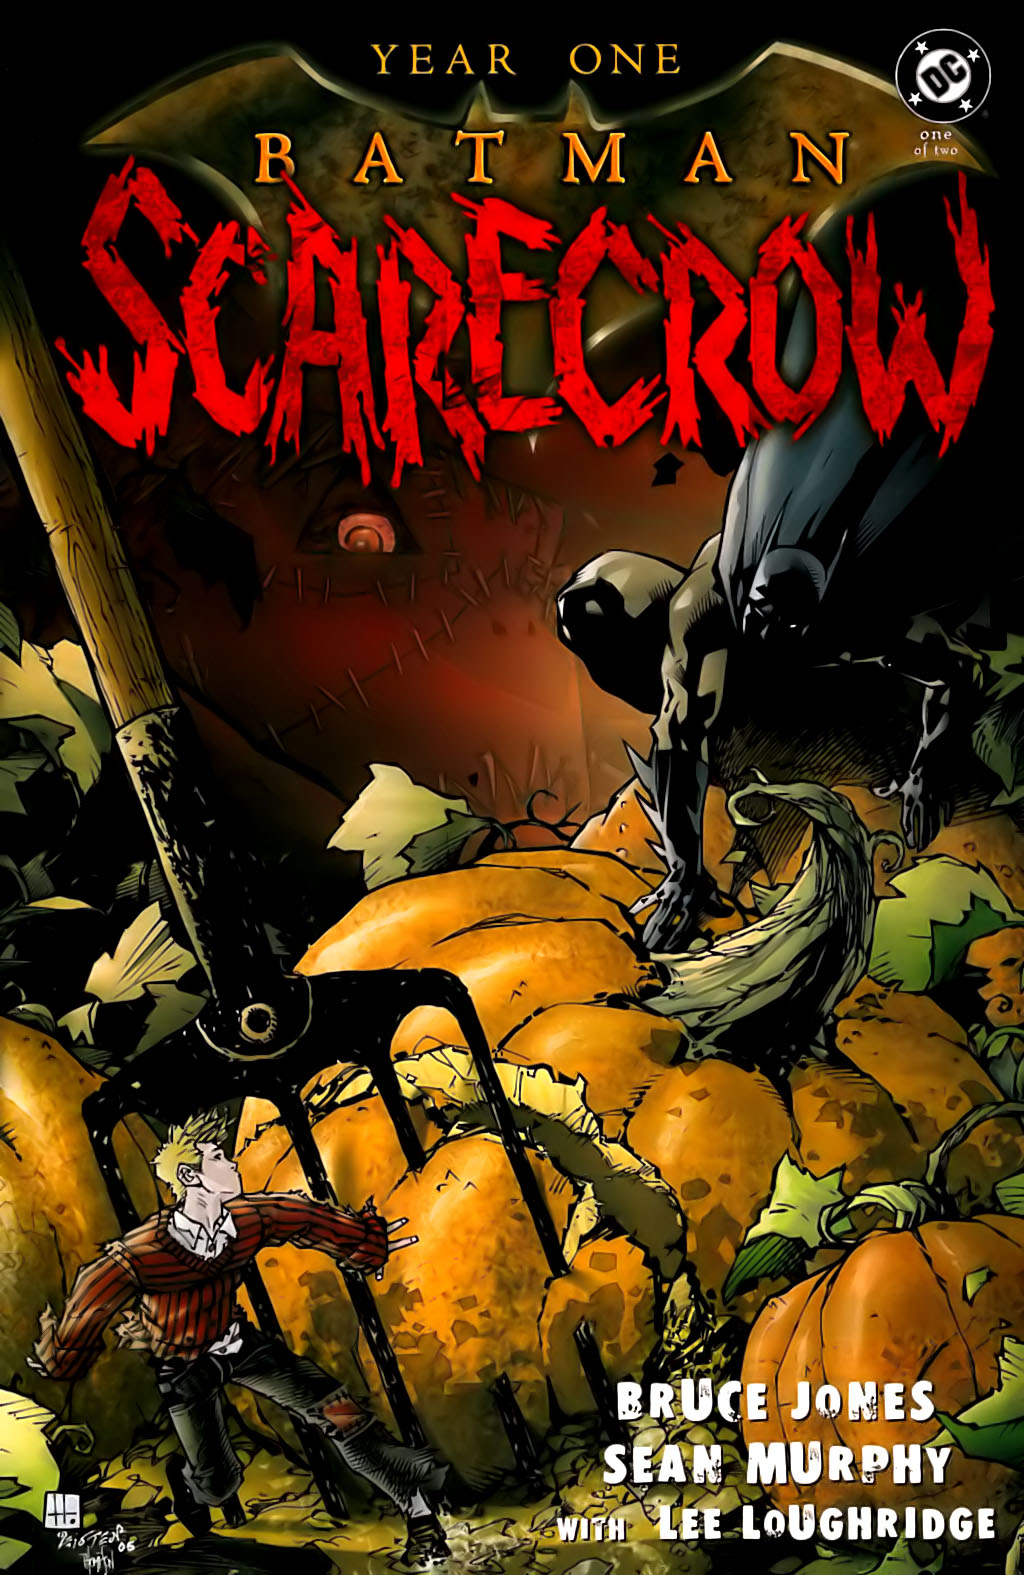 year one batman scarecrow issue 1 read full comics online for free